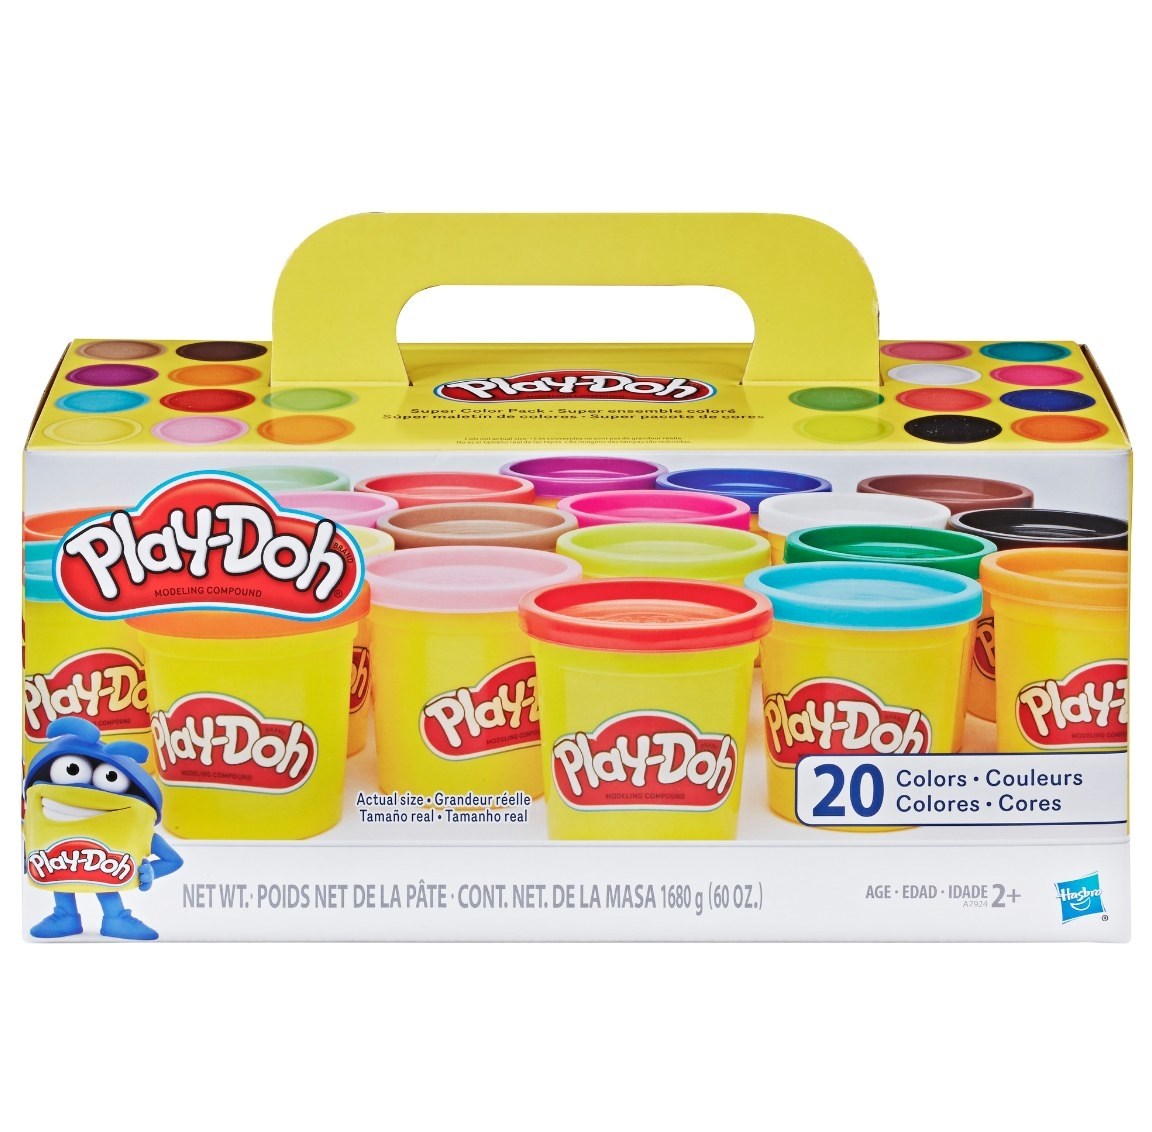 The play-doh bins in 20 different colors